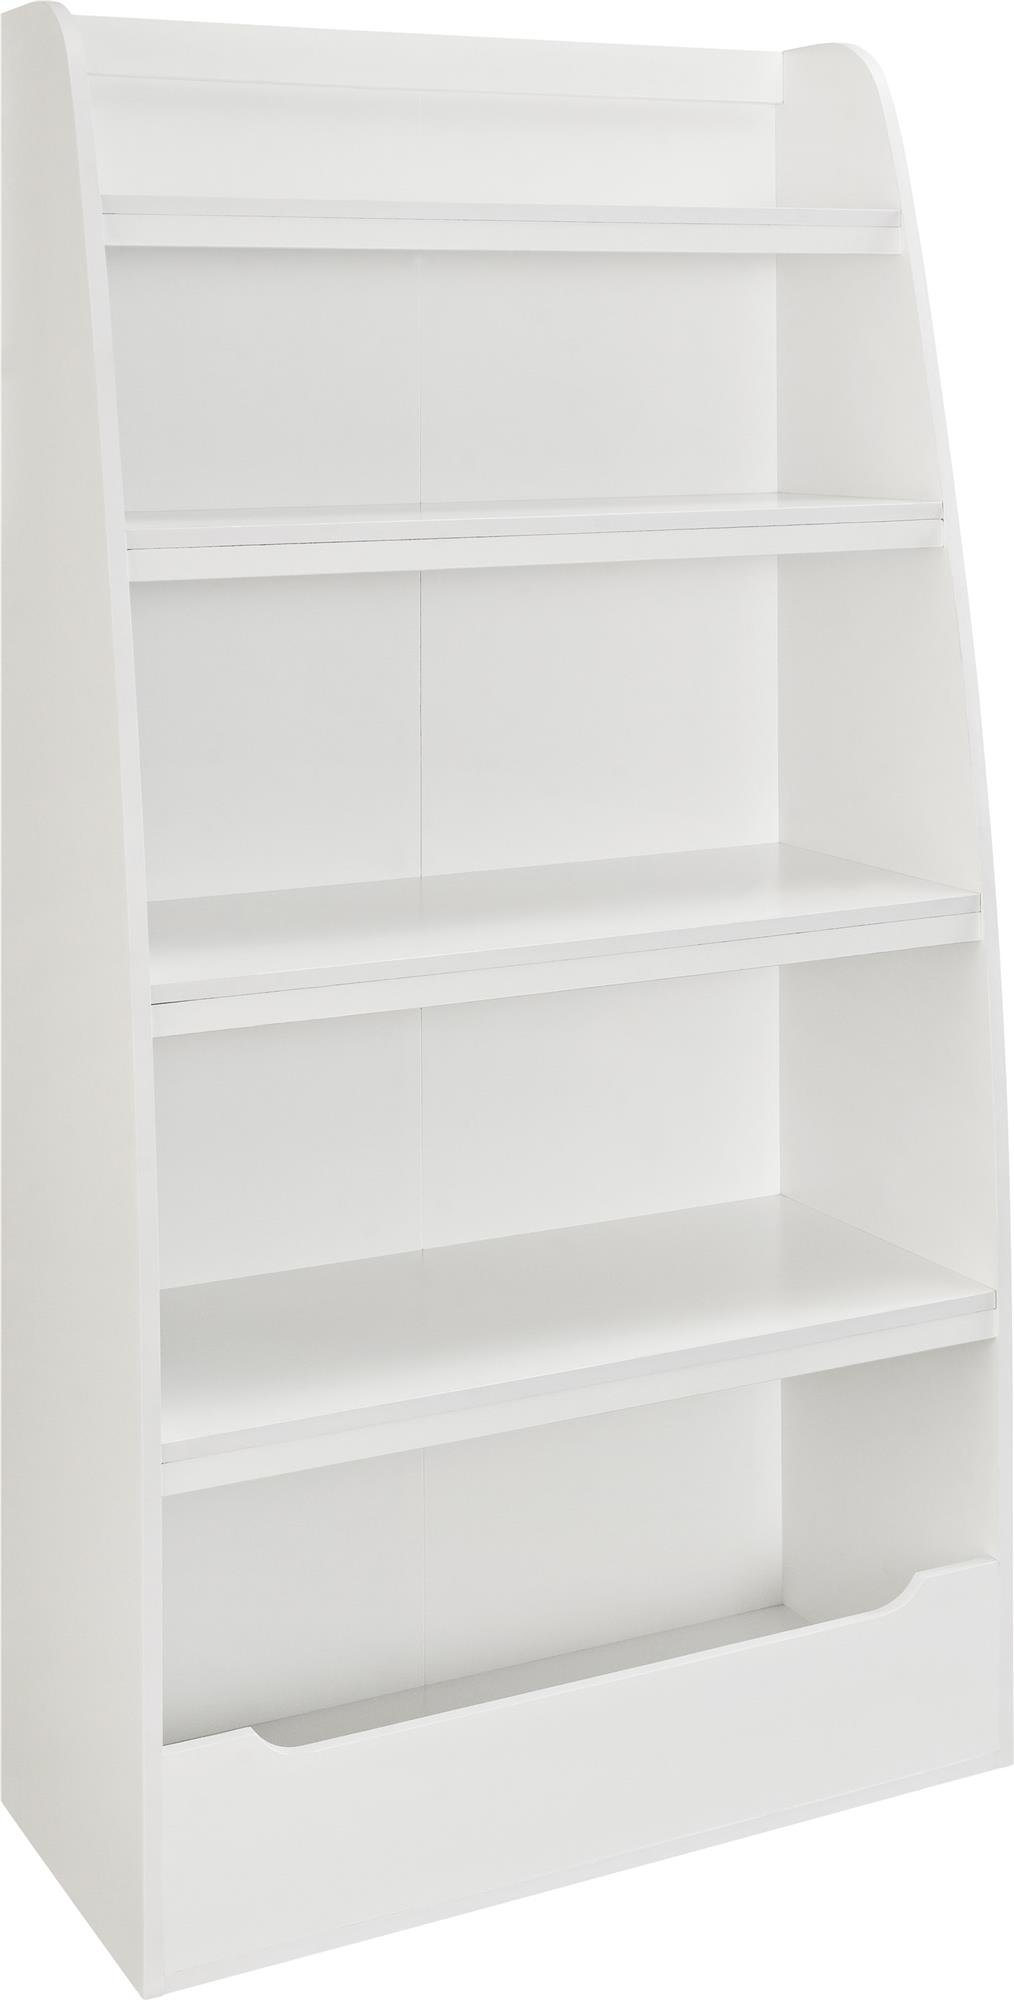 Ameriwood Home Hazel Kids' 4 Shelf Bookcase, White by Ameriwood Home (Image #5)